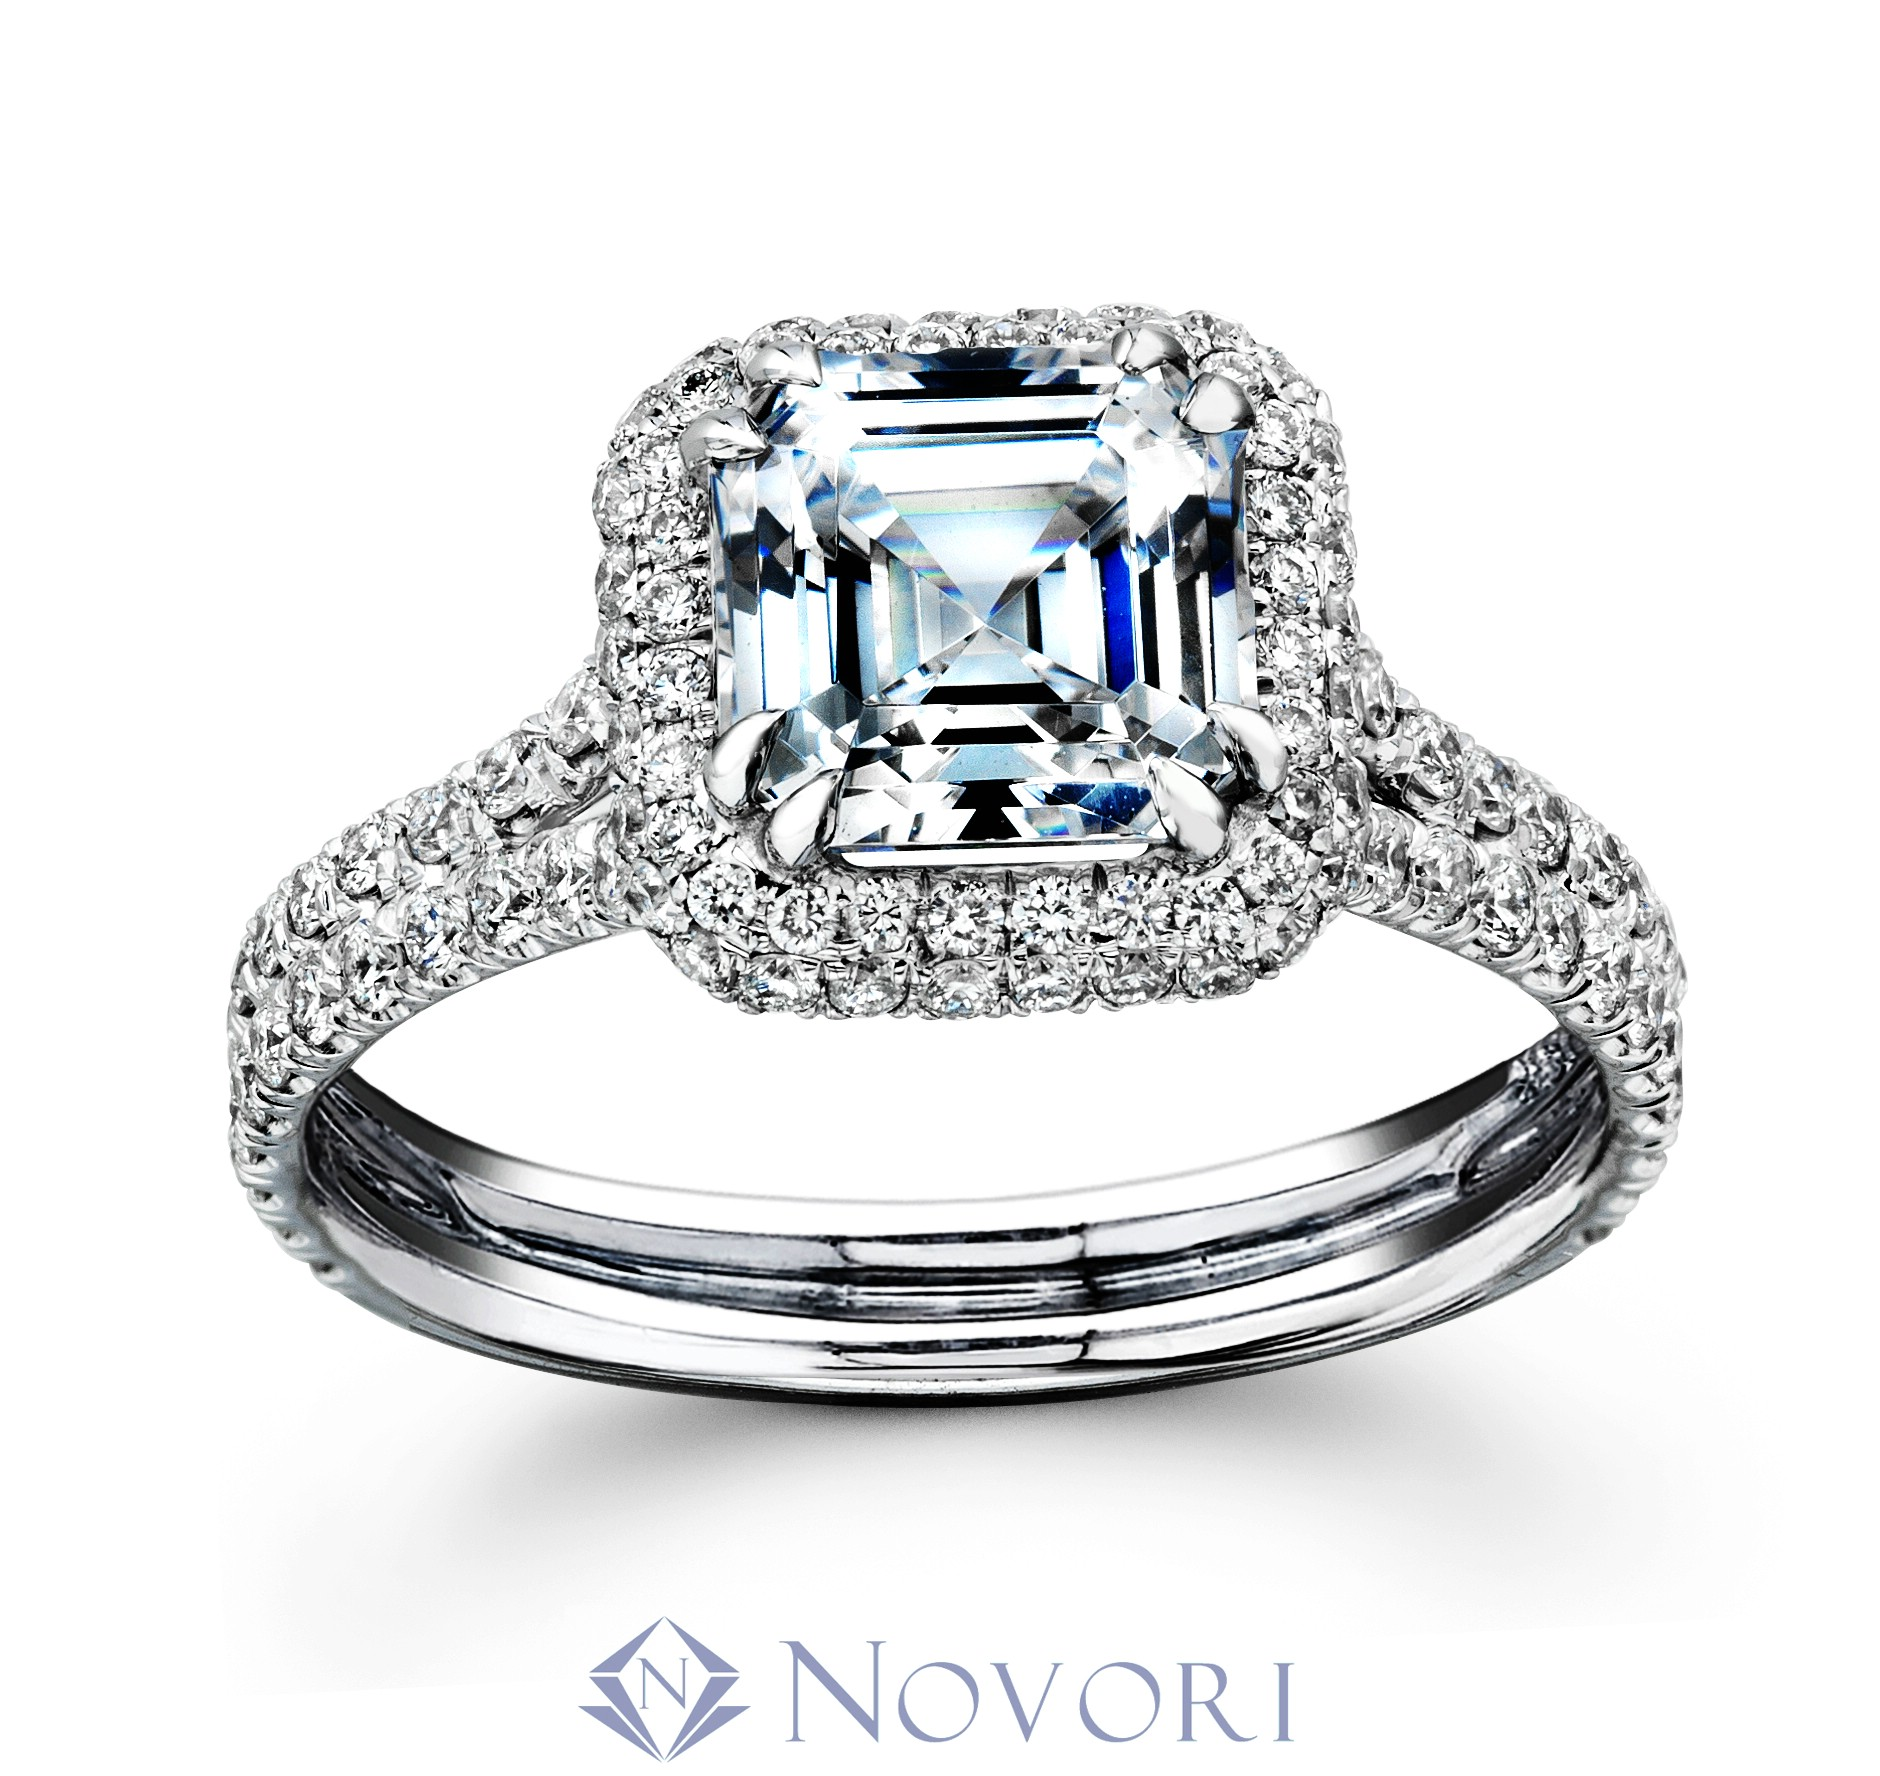 How To Care For Your Wedding Rings Cleaning Diamond Rings